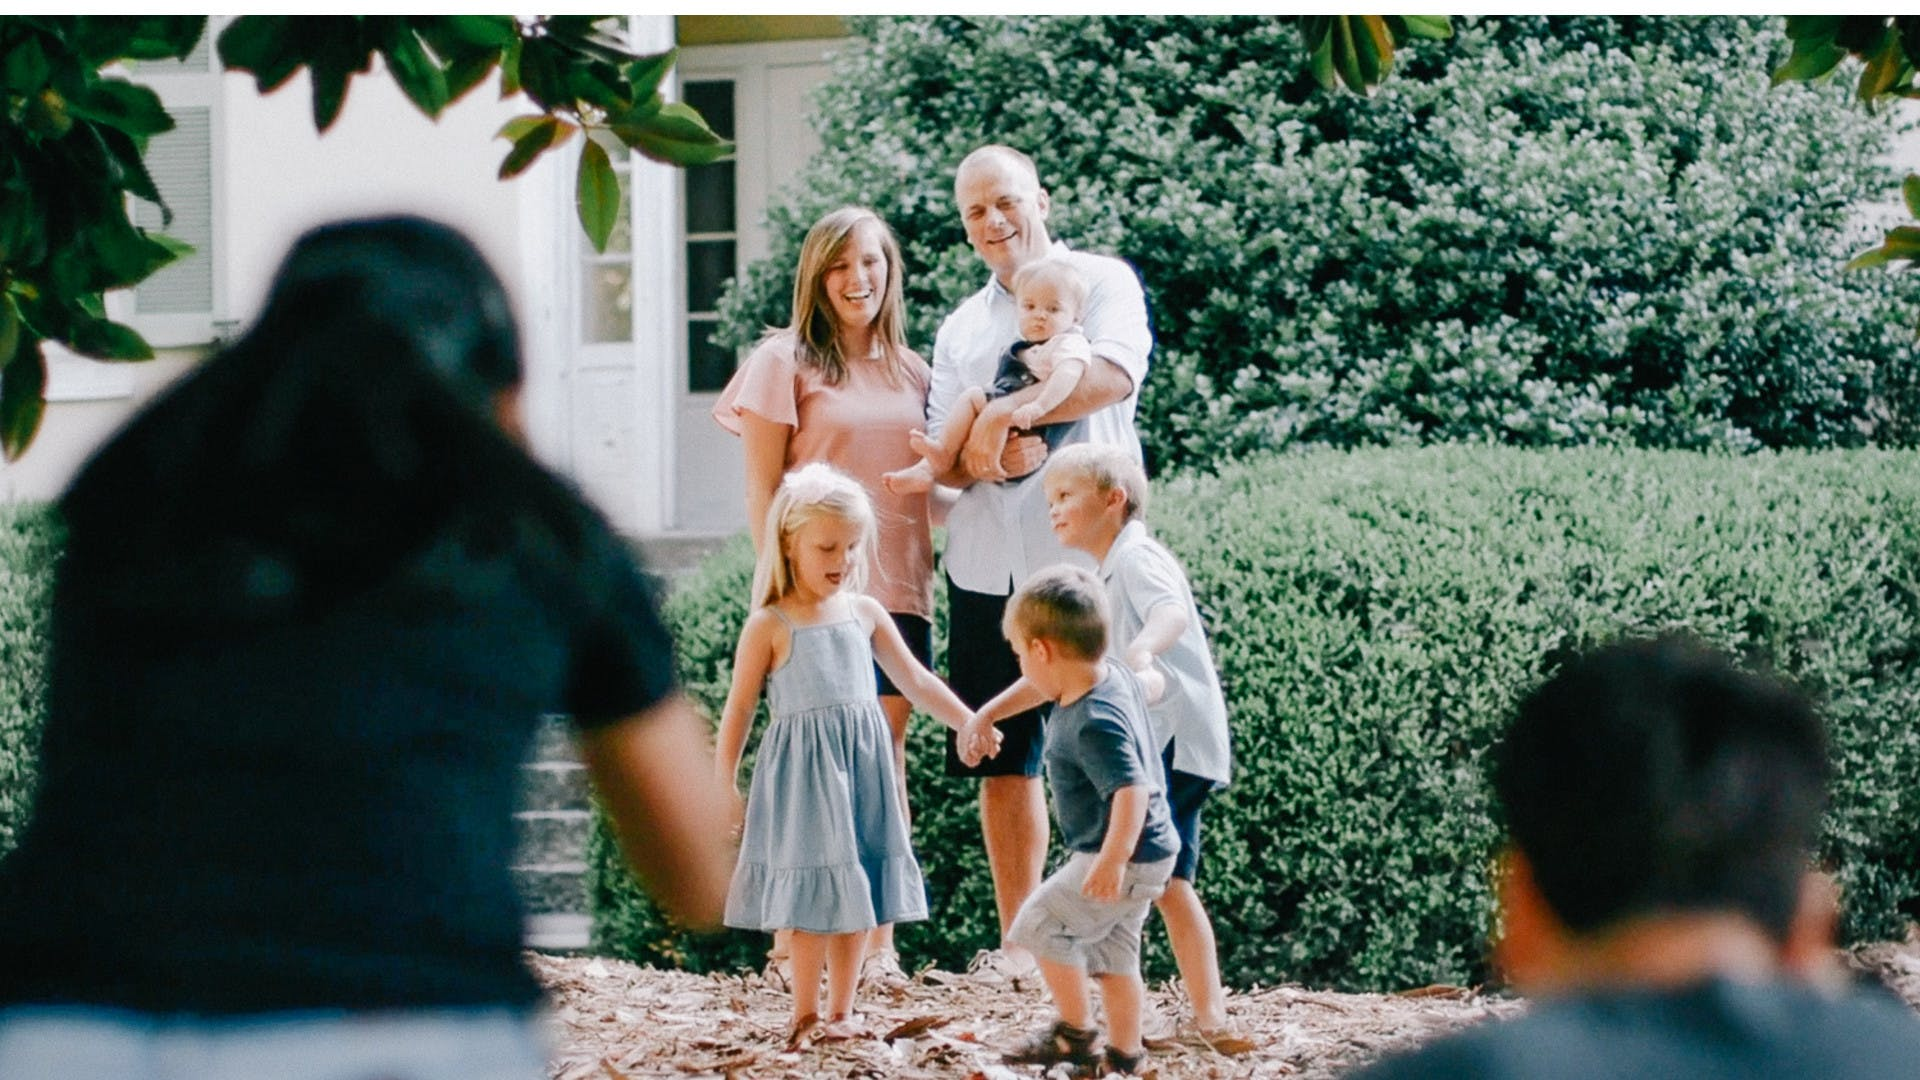 Professional wedding and portrait photographers Phillip and Eileen Blume on set in Georgia